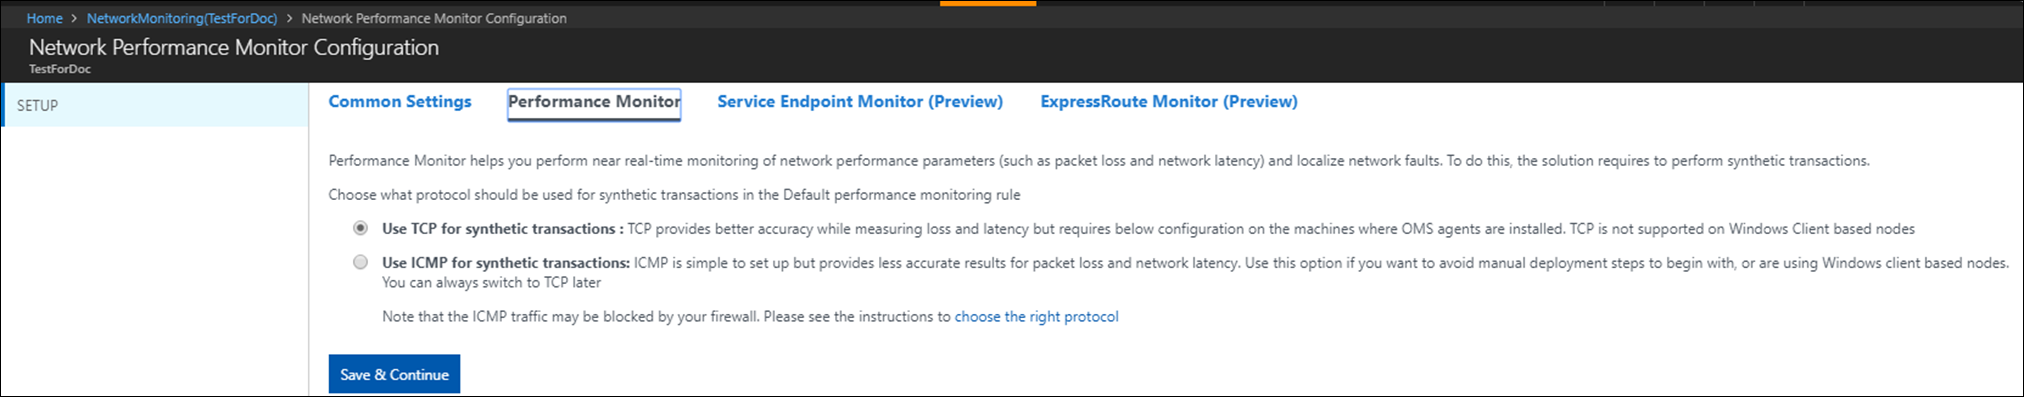 network performance monitor solution in azure  microsoft docs. performance monitor view